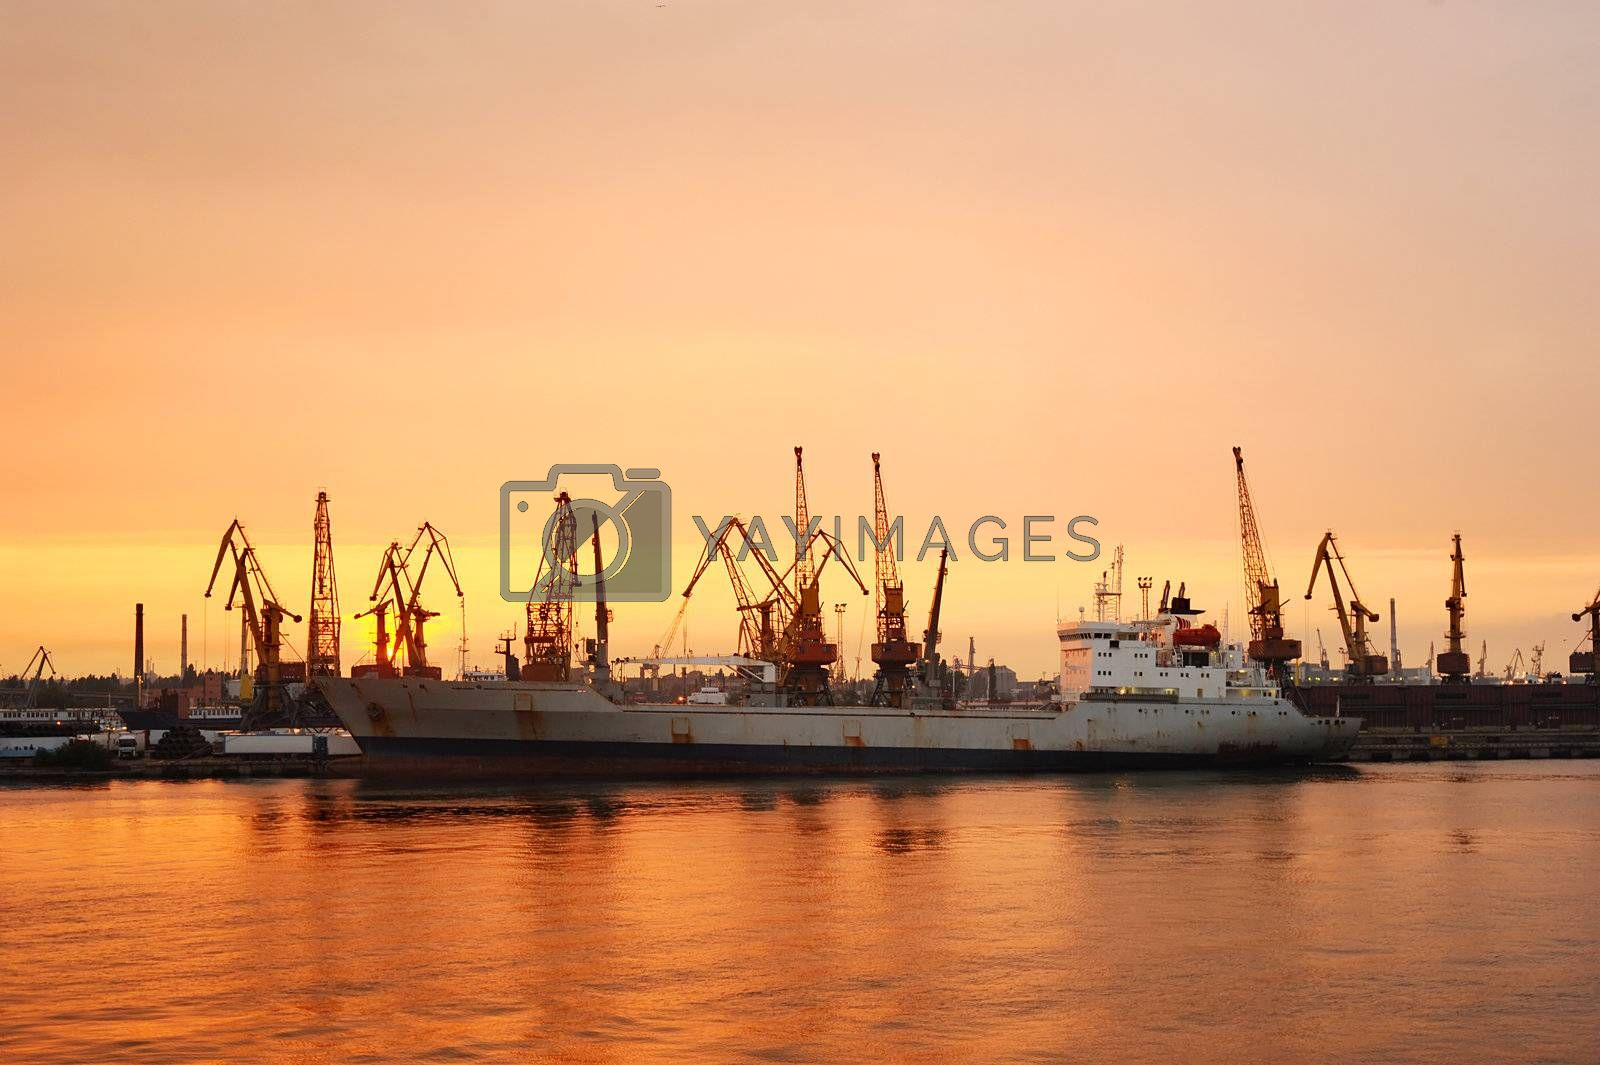 The Port of Odessa is the largest Ukrainian seaport and one of the largest ports in the Black Sea basin